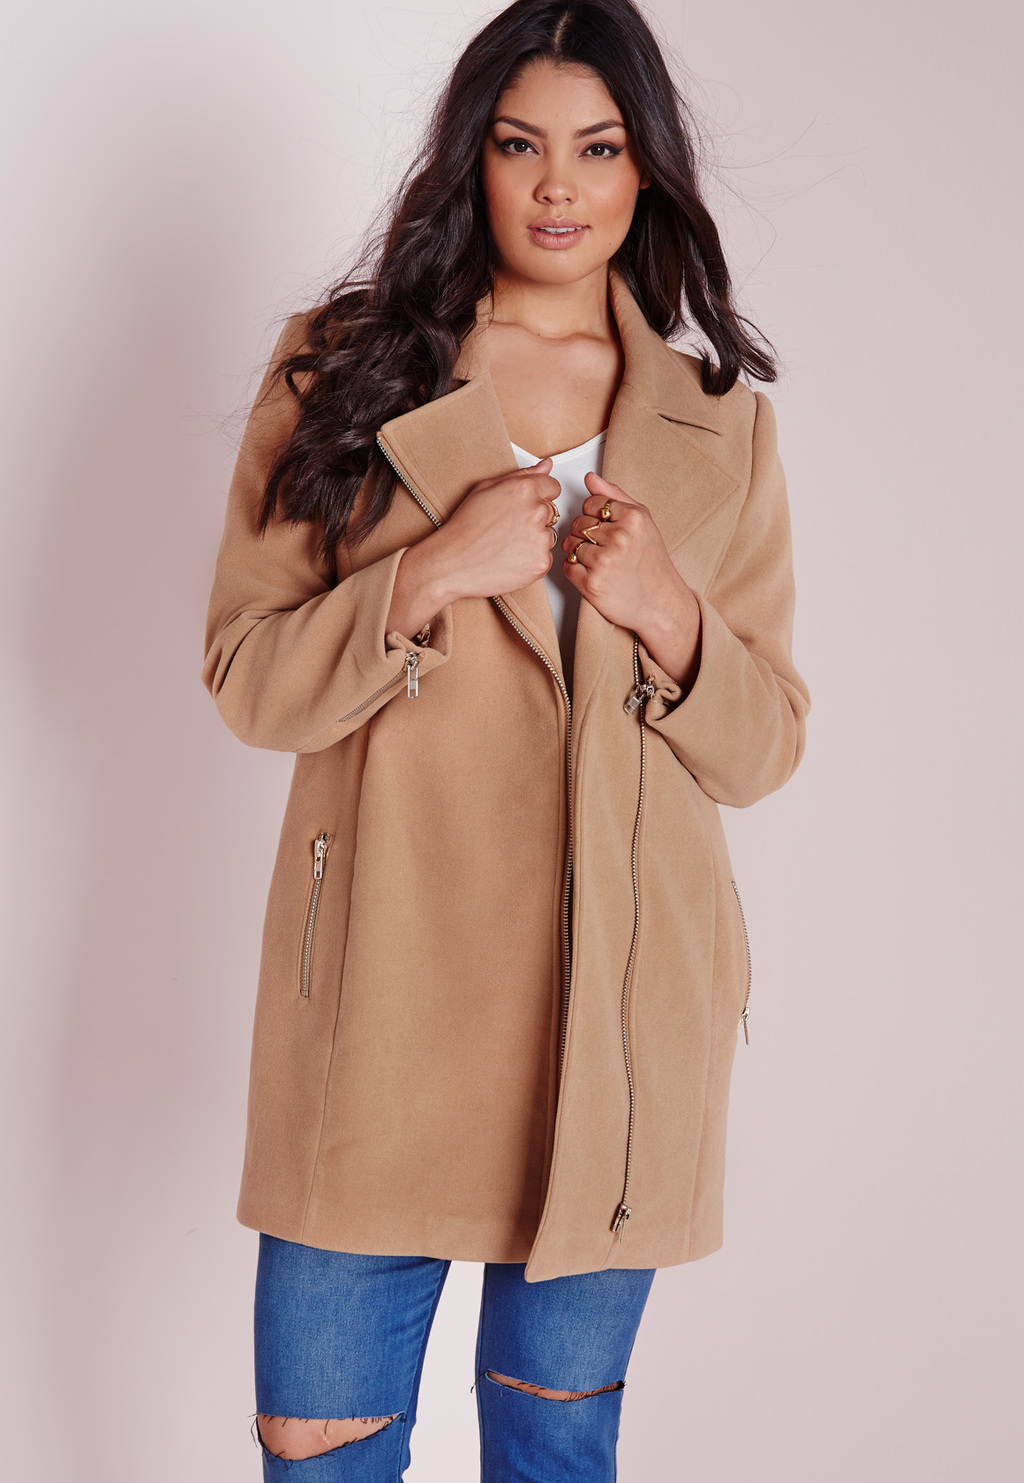 Plus Size Biker Coat Camel, Beige - pattern: plain; collar: asymmetric biker; length: mid thigh; predominant colour: camel; occasions: casual, work, creative work; fit: tailored/fitted; fibres: polyester/polyamide - mix; sleeve length: long sleeve; sleeve style: standard; collar break: medium; pattern type: fabric; texture group: woven bulky/heavy; style: biker; season: a/w 2015; wardrobe: basic